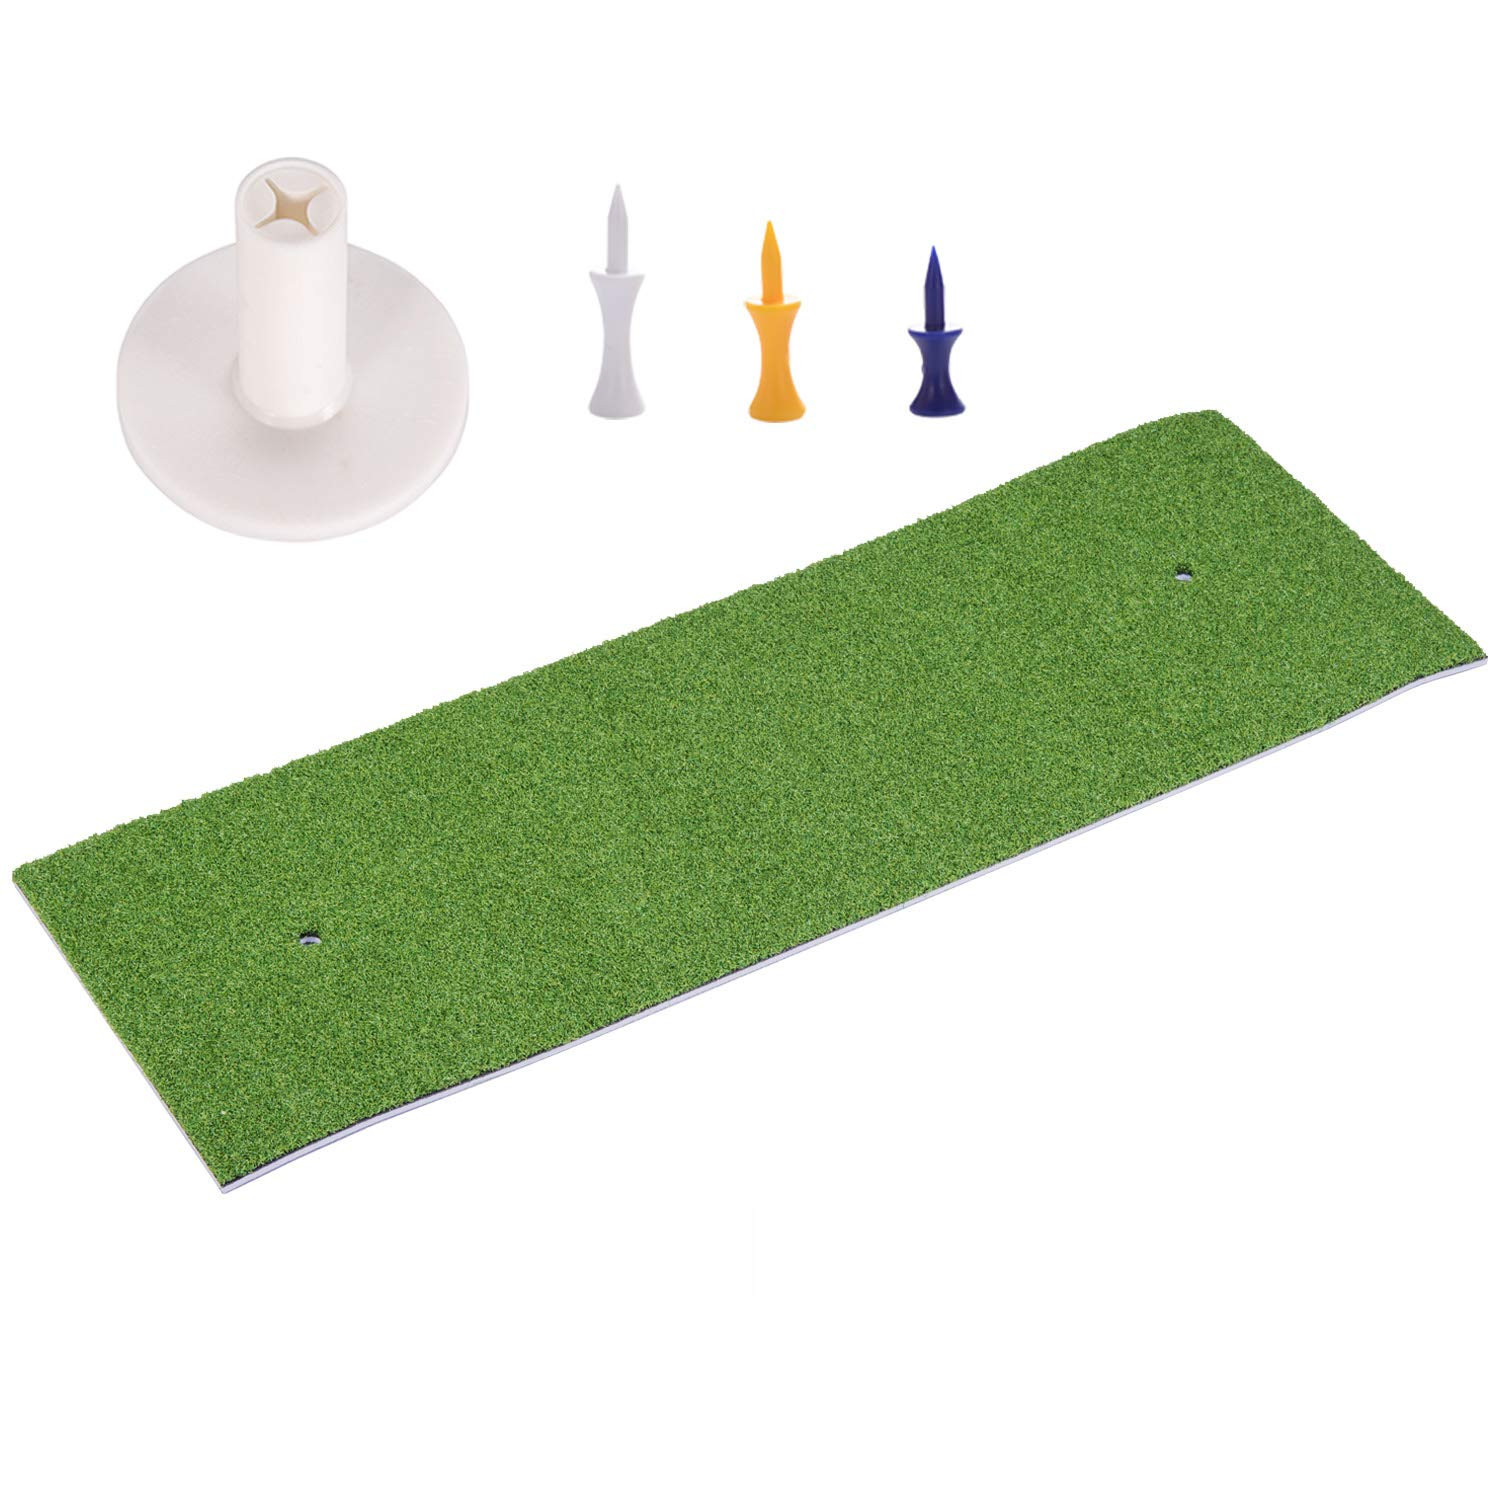 SkyLife Golf Practice Mat 1'x3' Driving Chipping Putting Hitting Turf Training Equipment for Backyard Home Garage Outdoor (1' x 3') by SkyLife